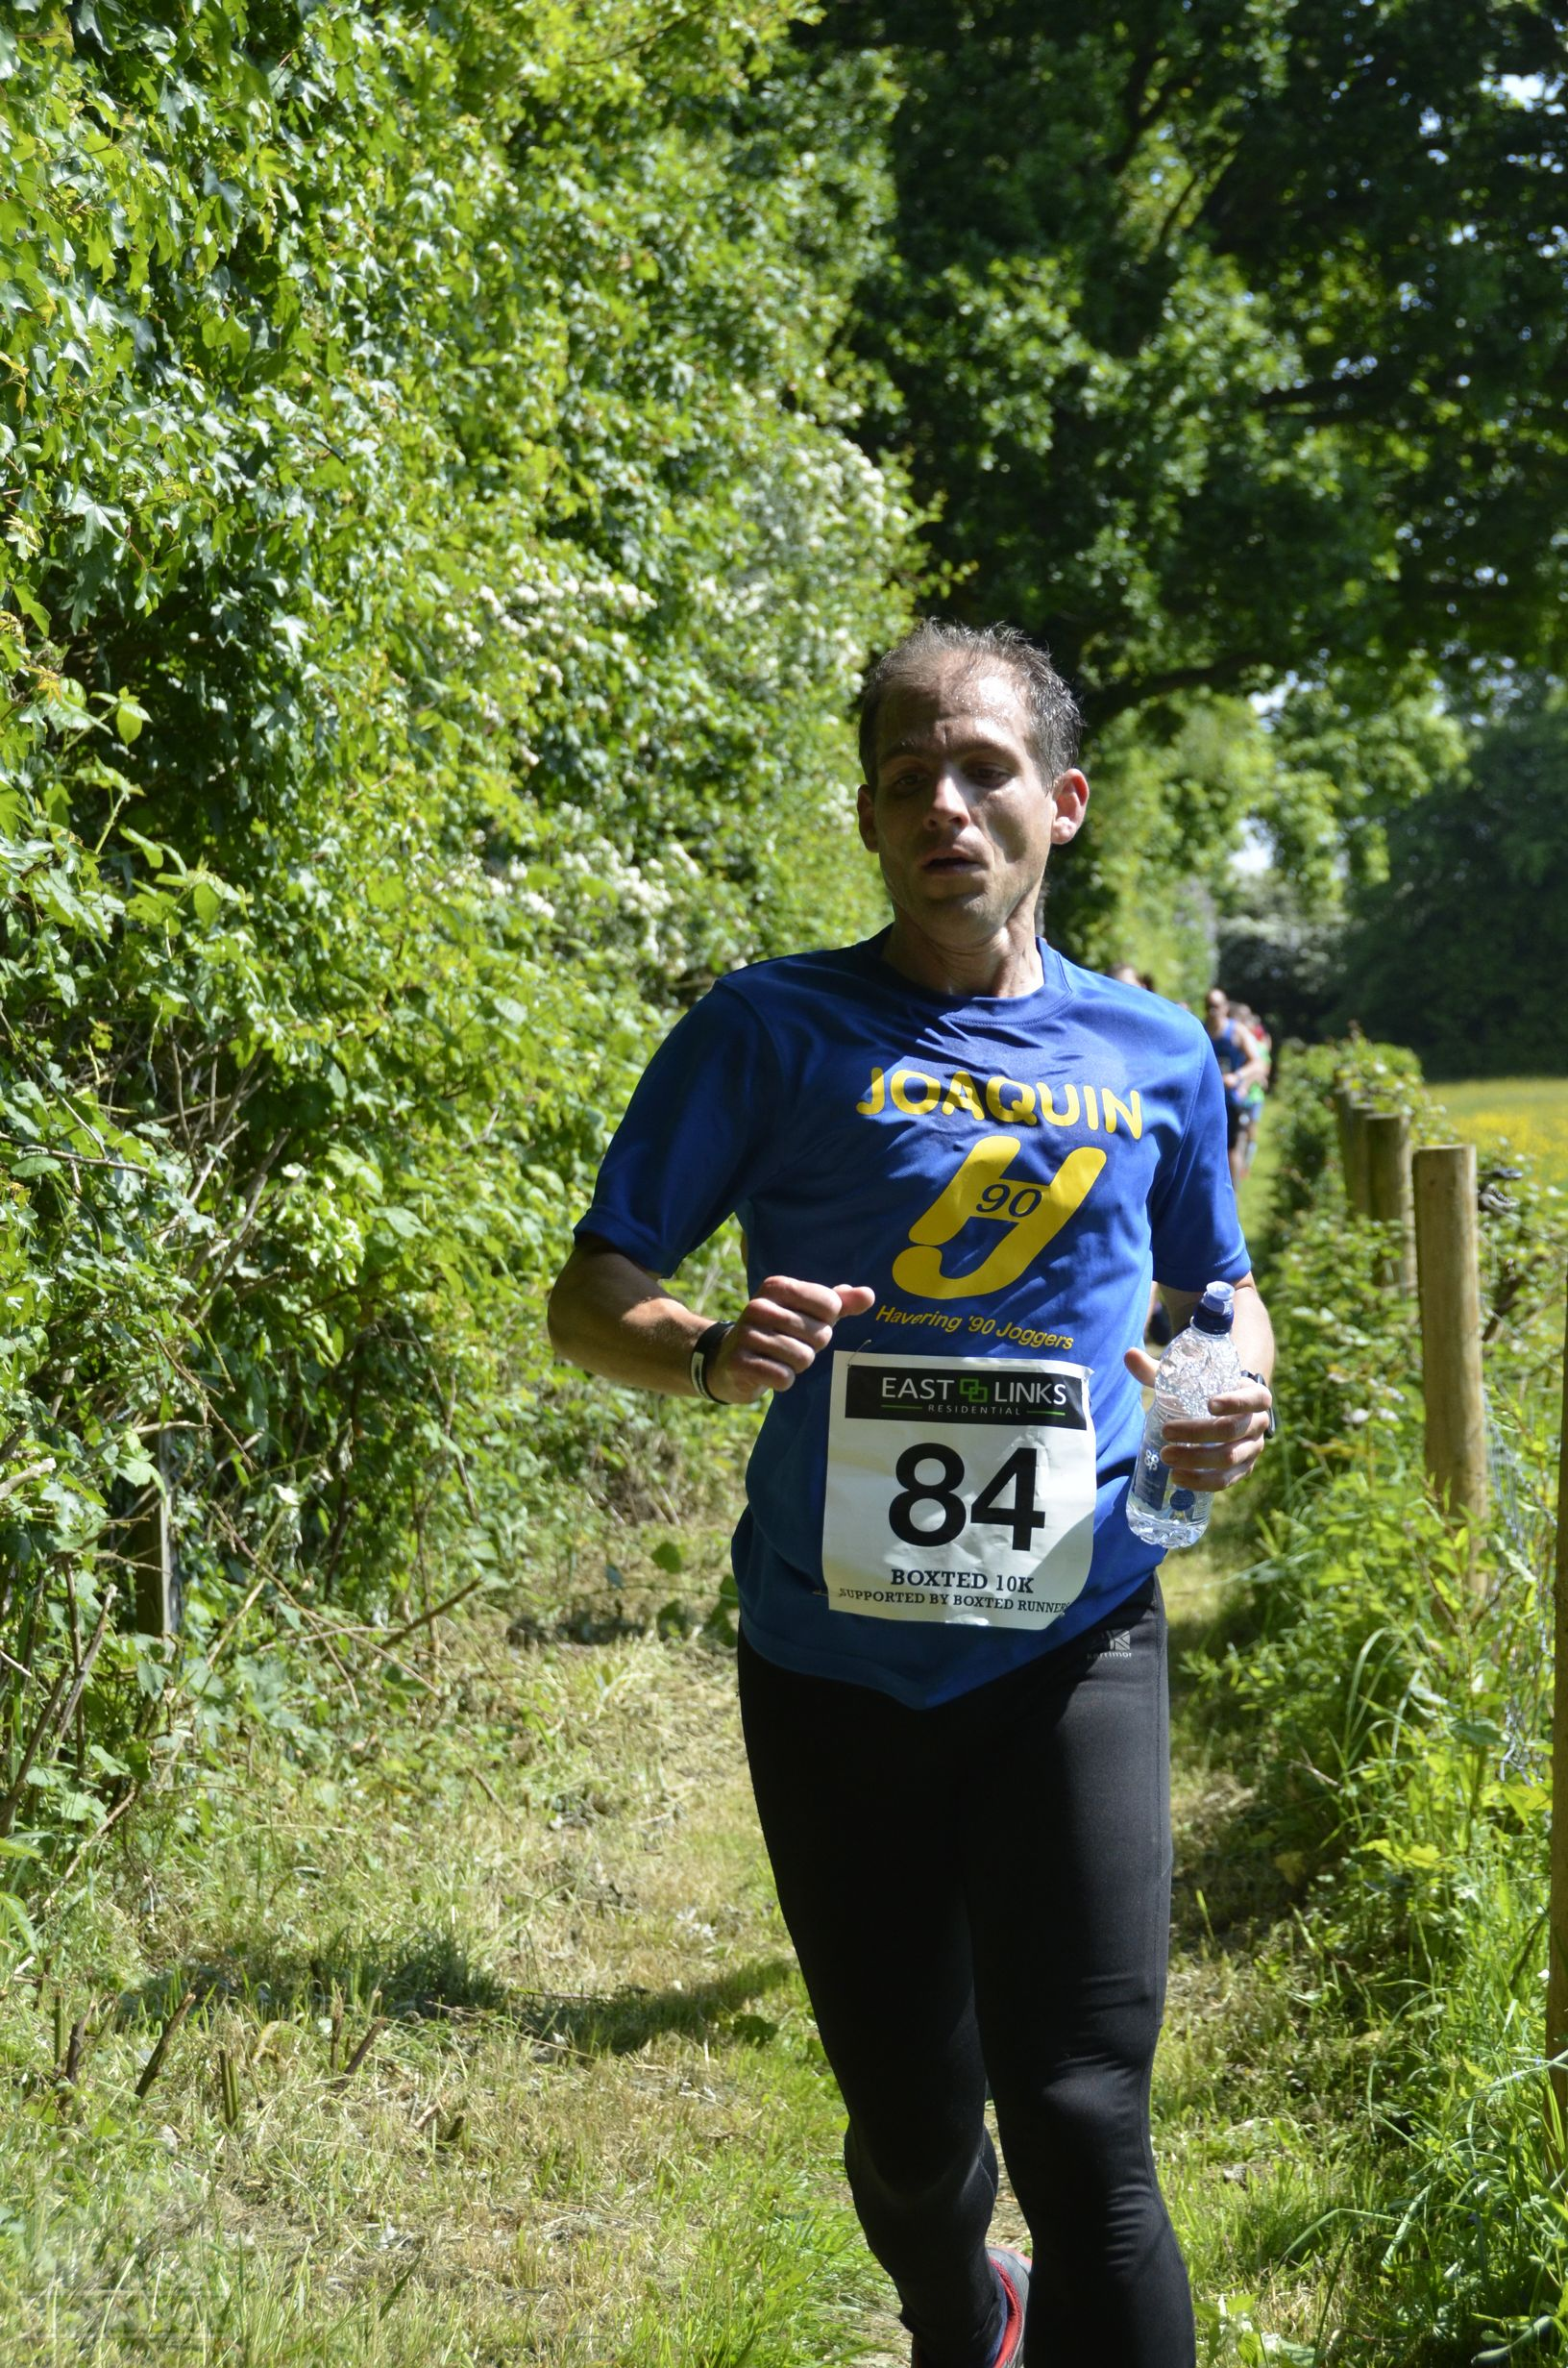 Boxted10k-00163